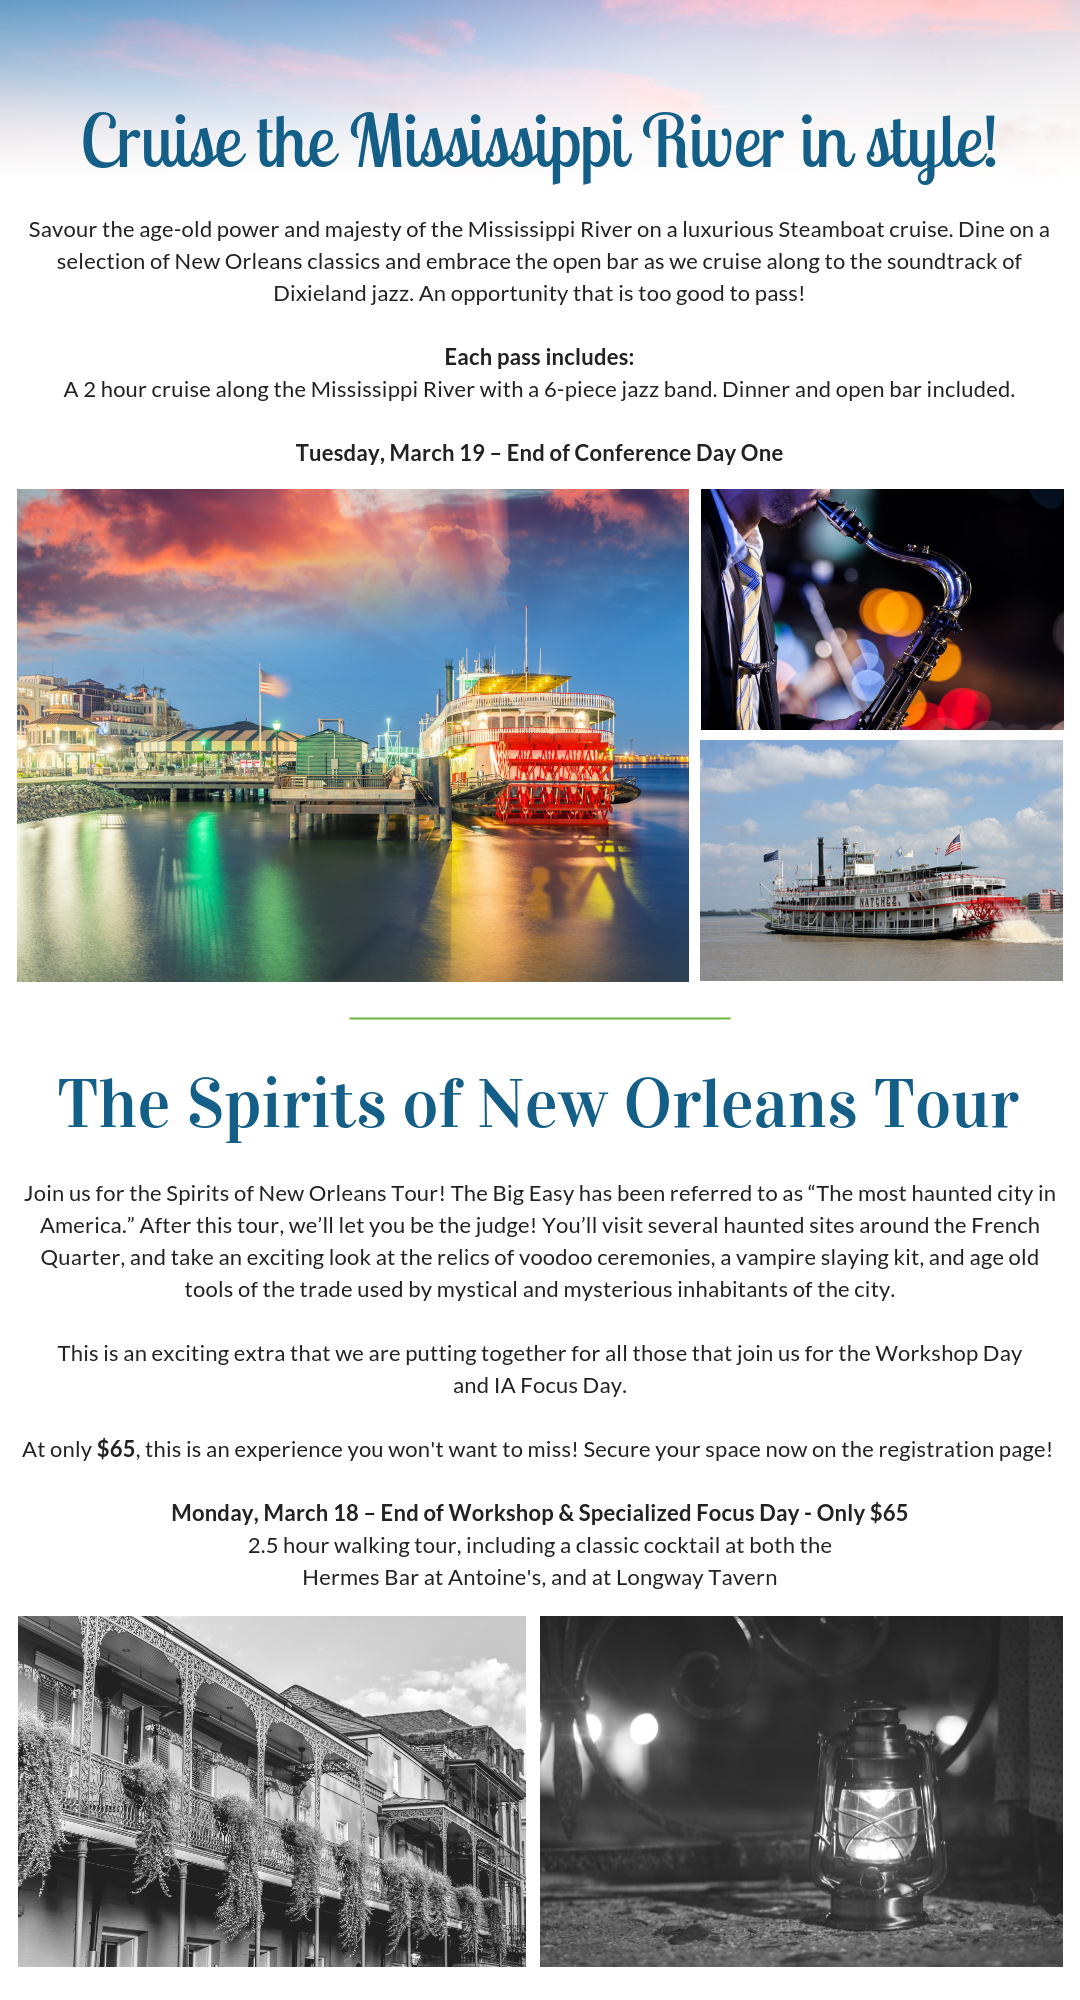 OPEX FS Steamboat Dinner Cruise and Spirits of New Orleans Tour for Business Transformation professionals